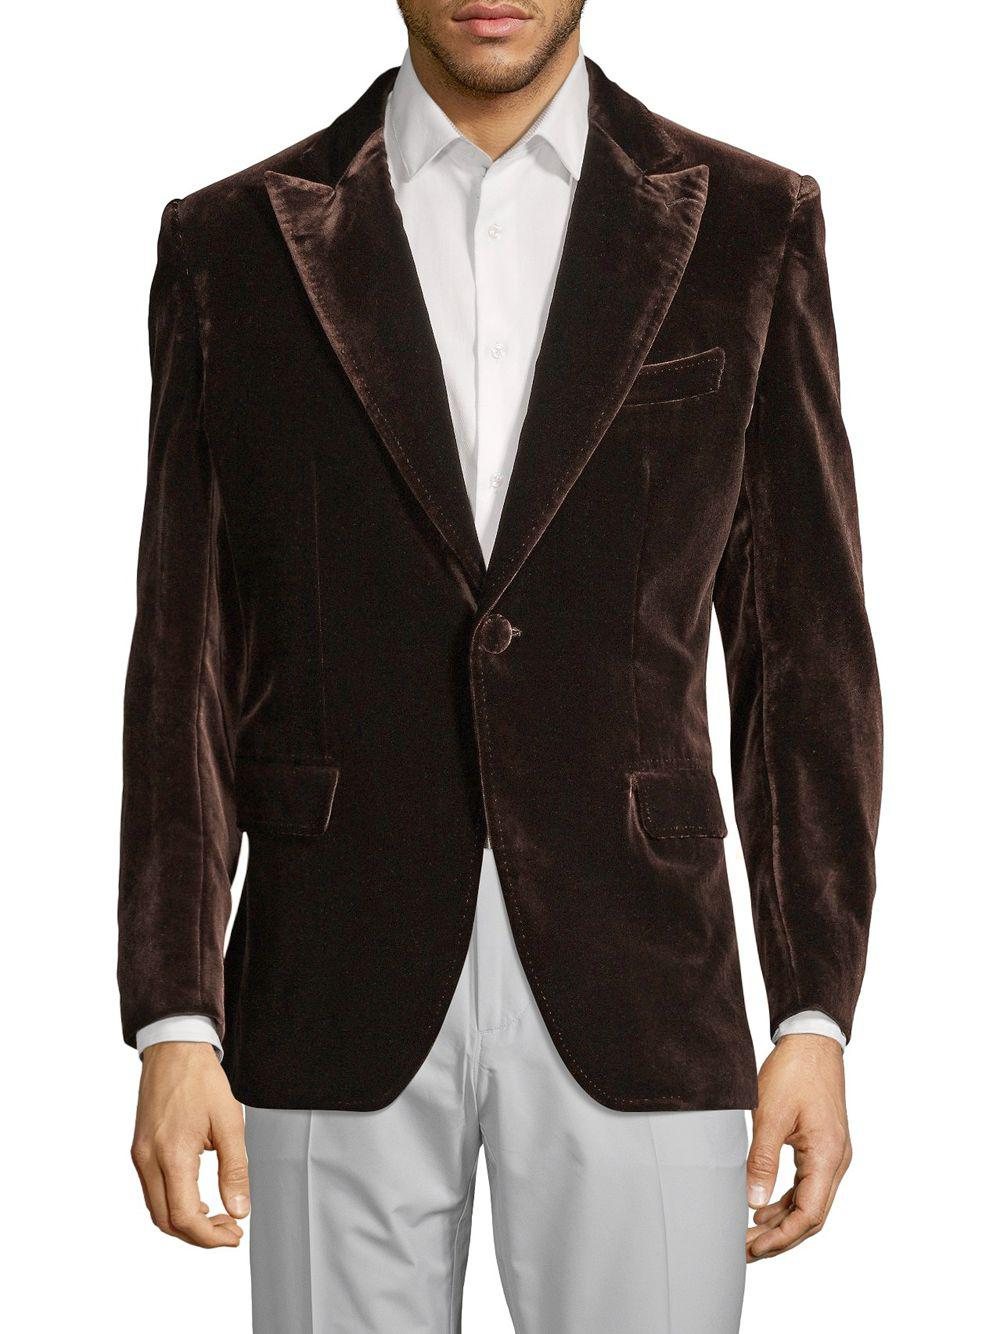 0ce214fcf Brioni Velvet Blazer in Brown for Men - Lyst